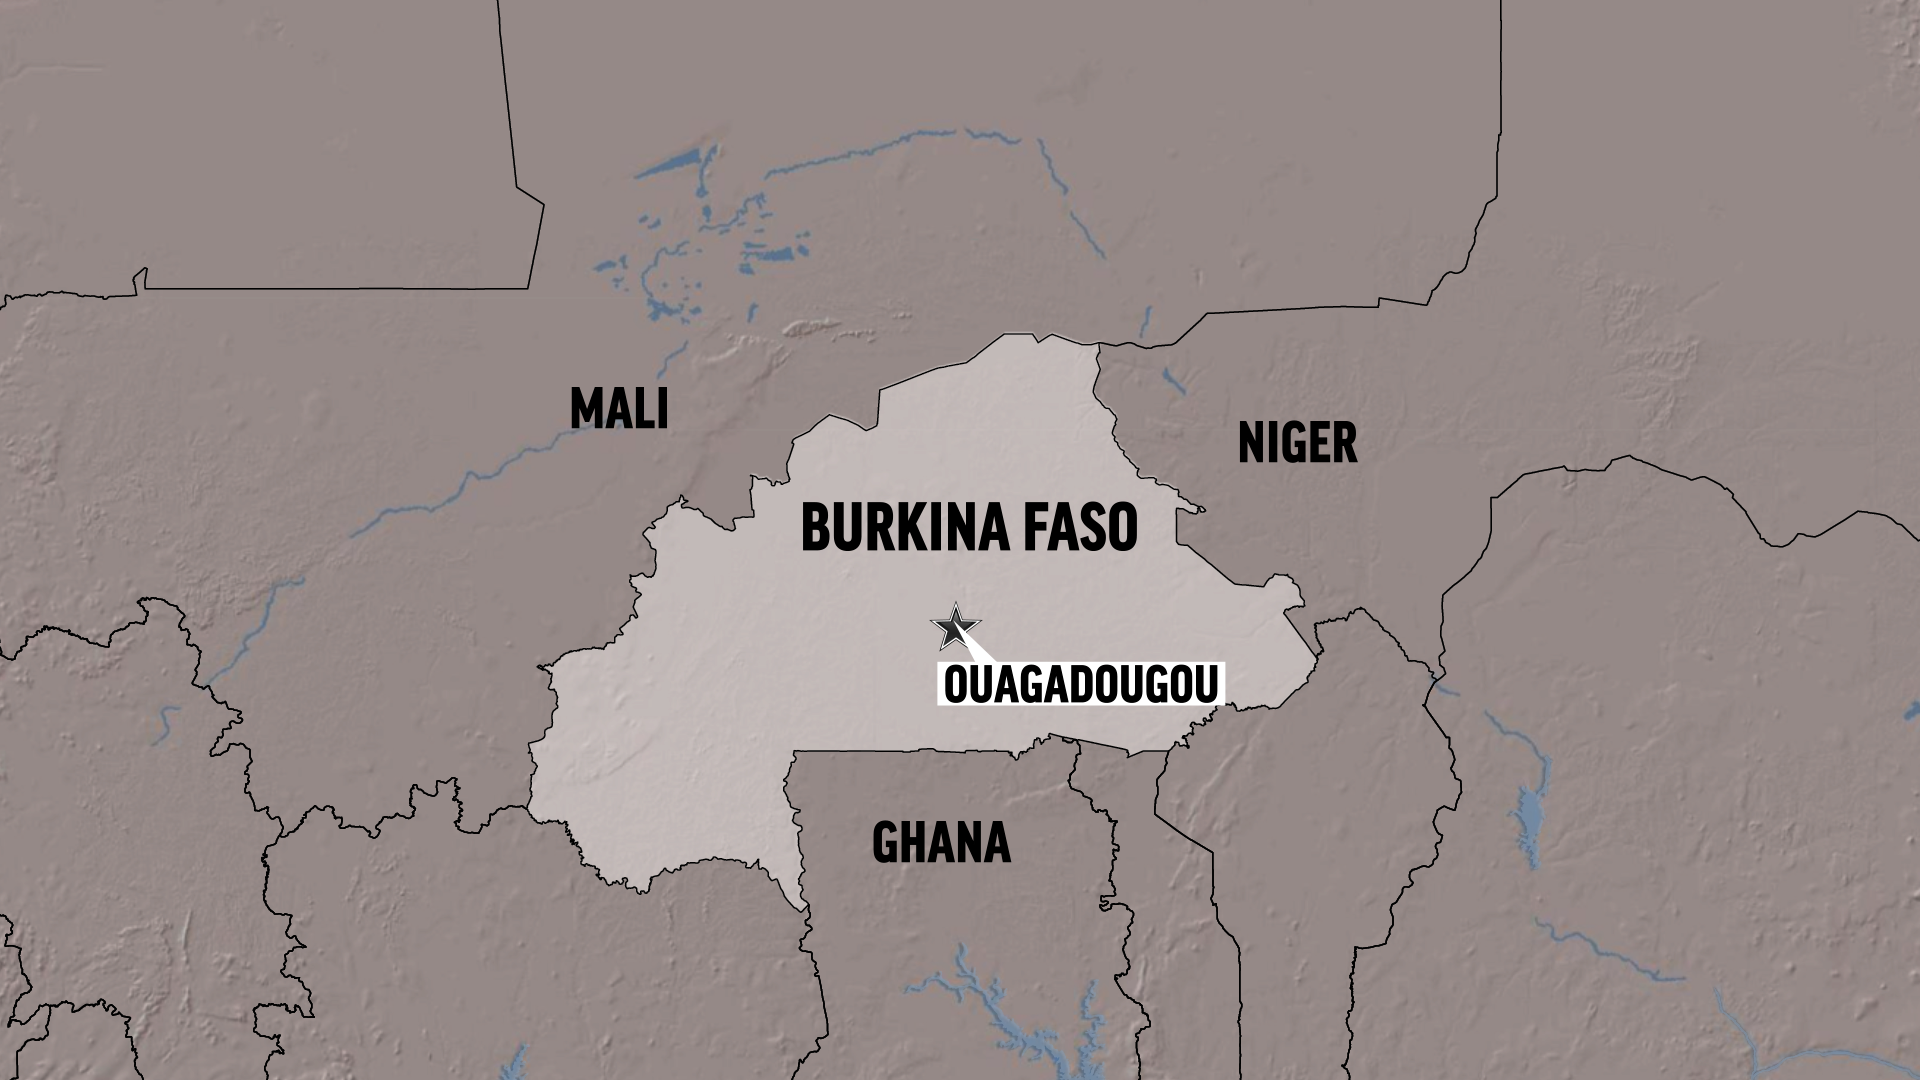 Burkina Faso forces kill 3 militants, hostages trapped in building